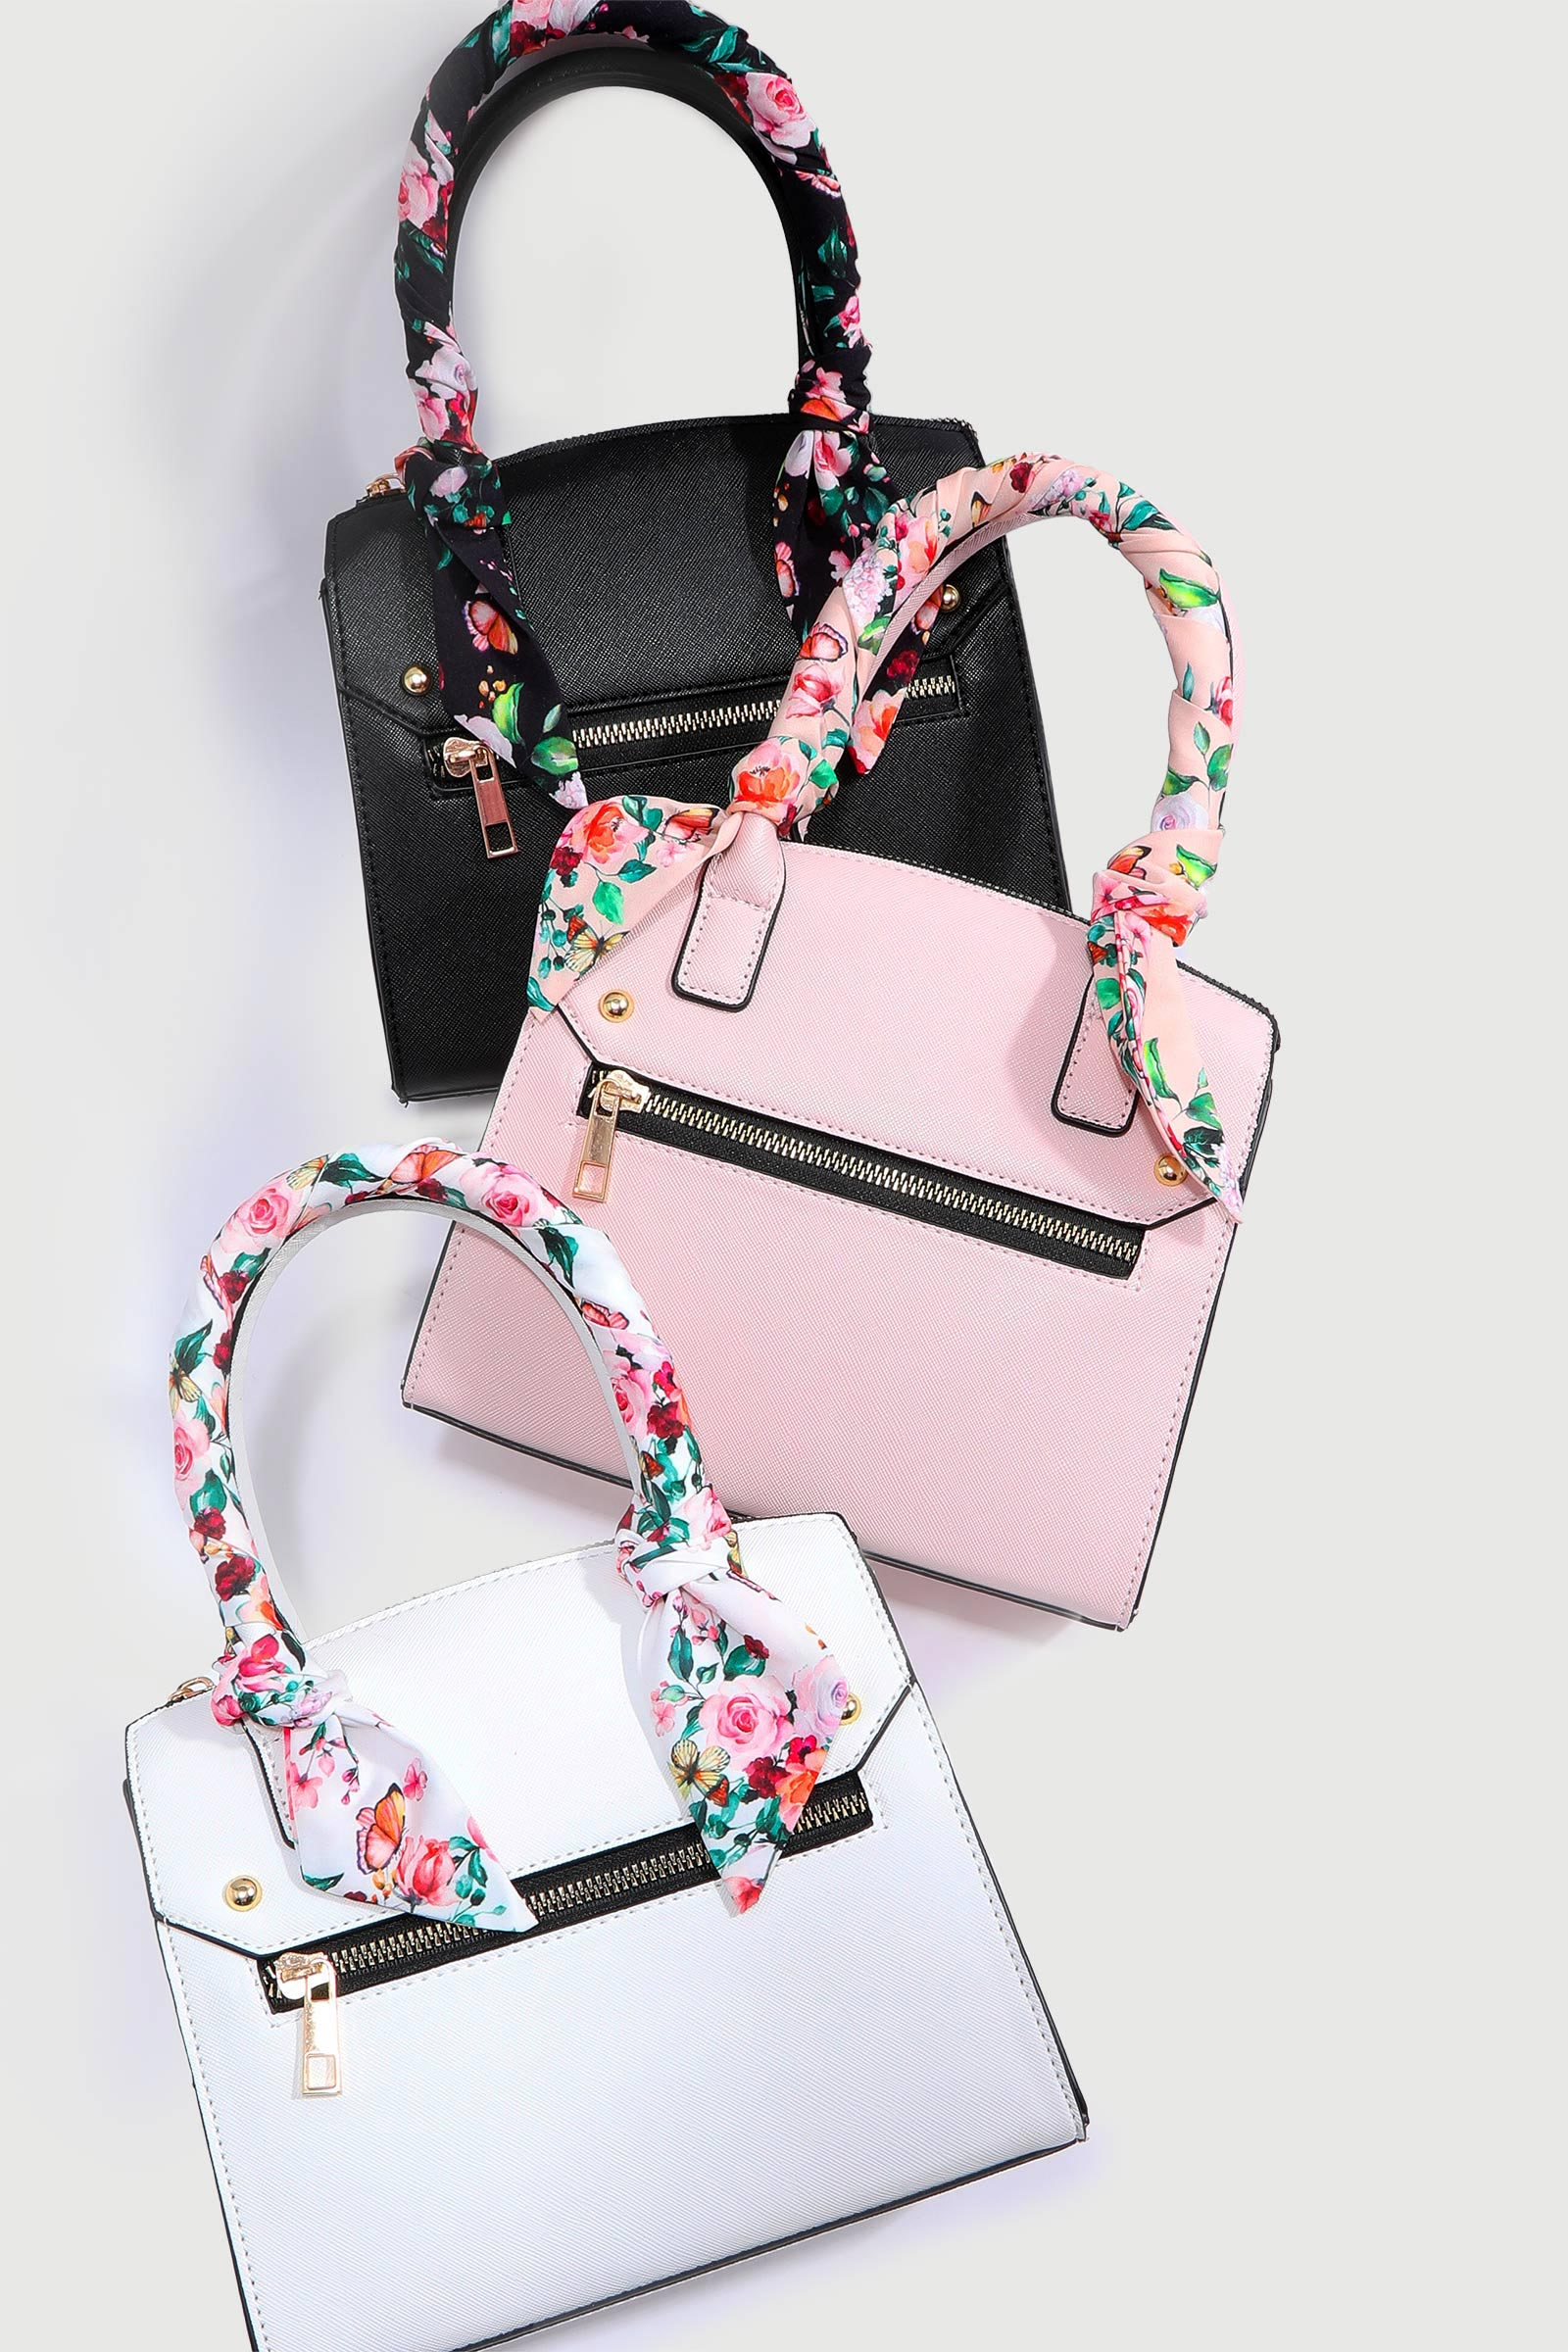 Tote Bag with Floral Handles